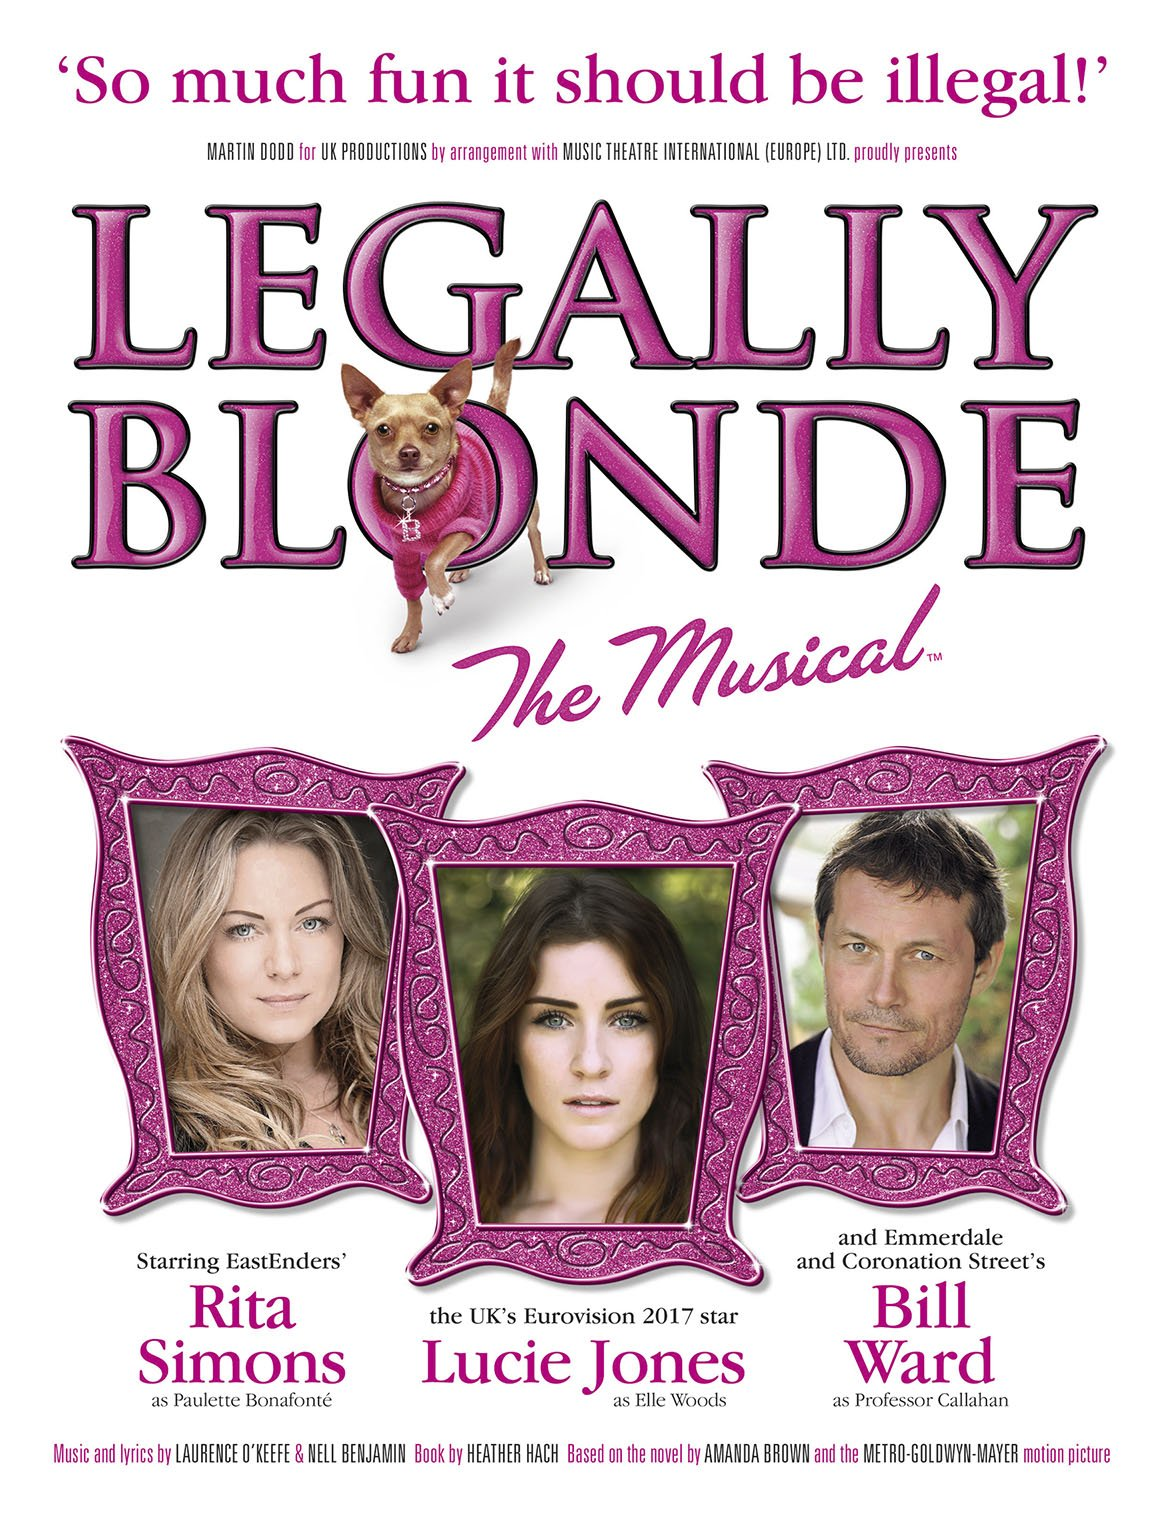 #LegallyBlondeTheMusical has arrived at the #RhylPavilion #Theatre, check out our review of this lyrical slice of fun, on until the 28th October 2017